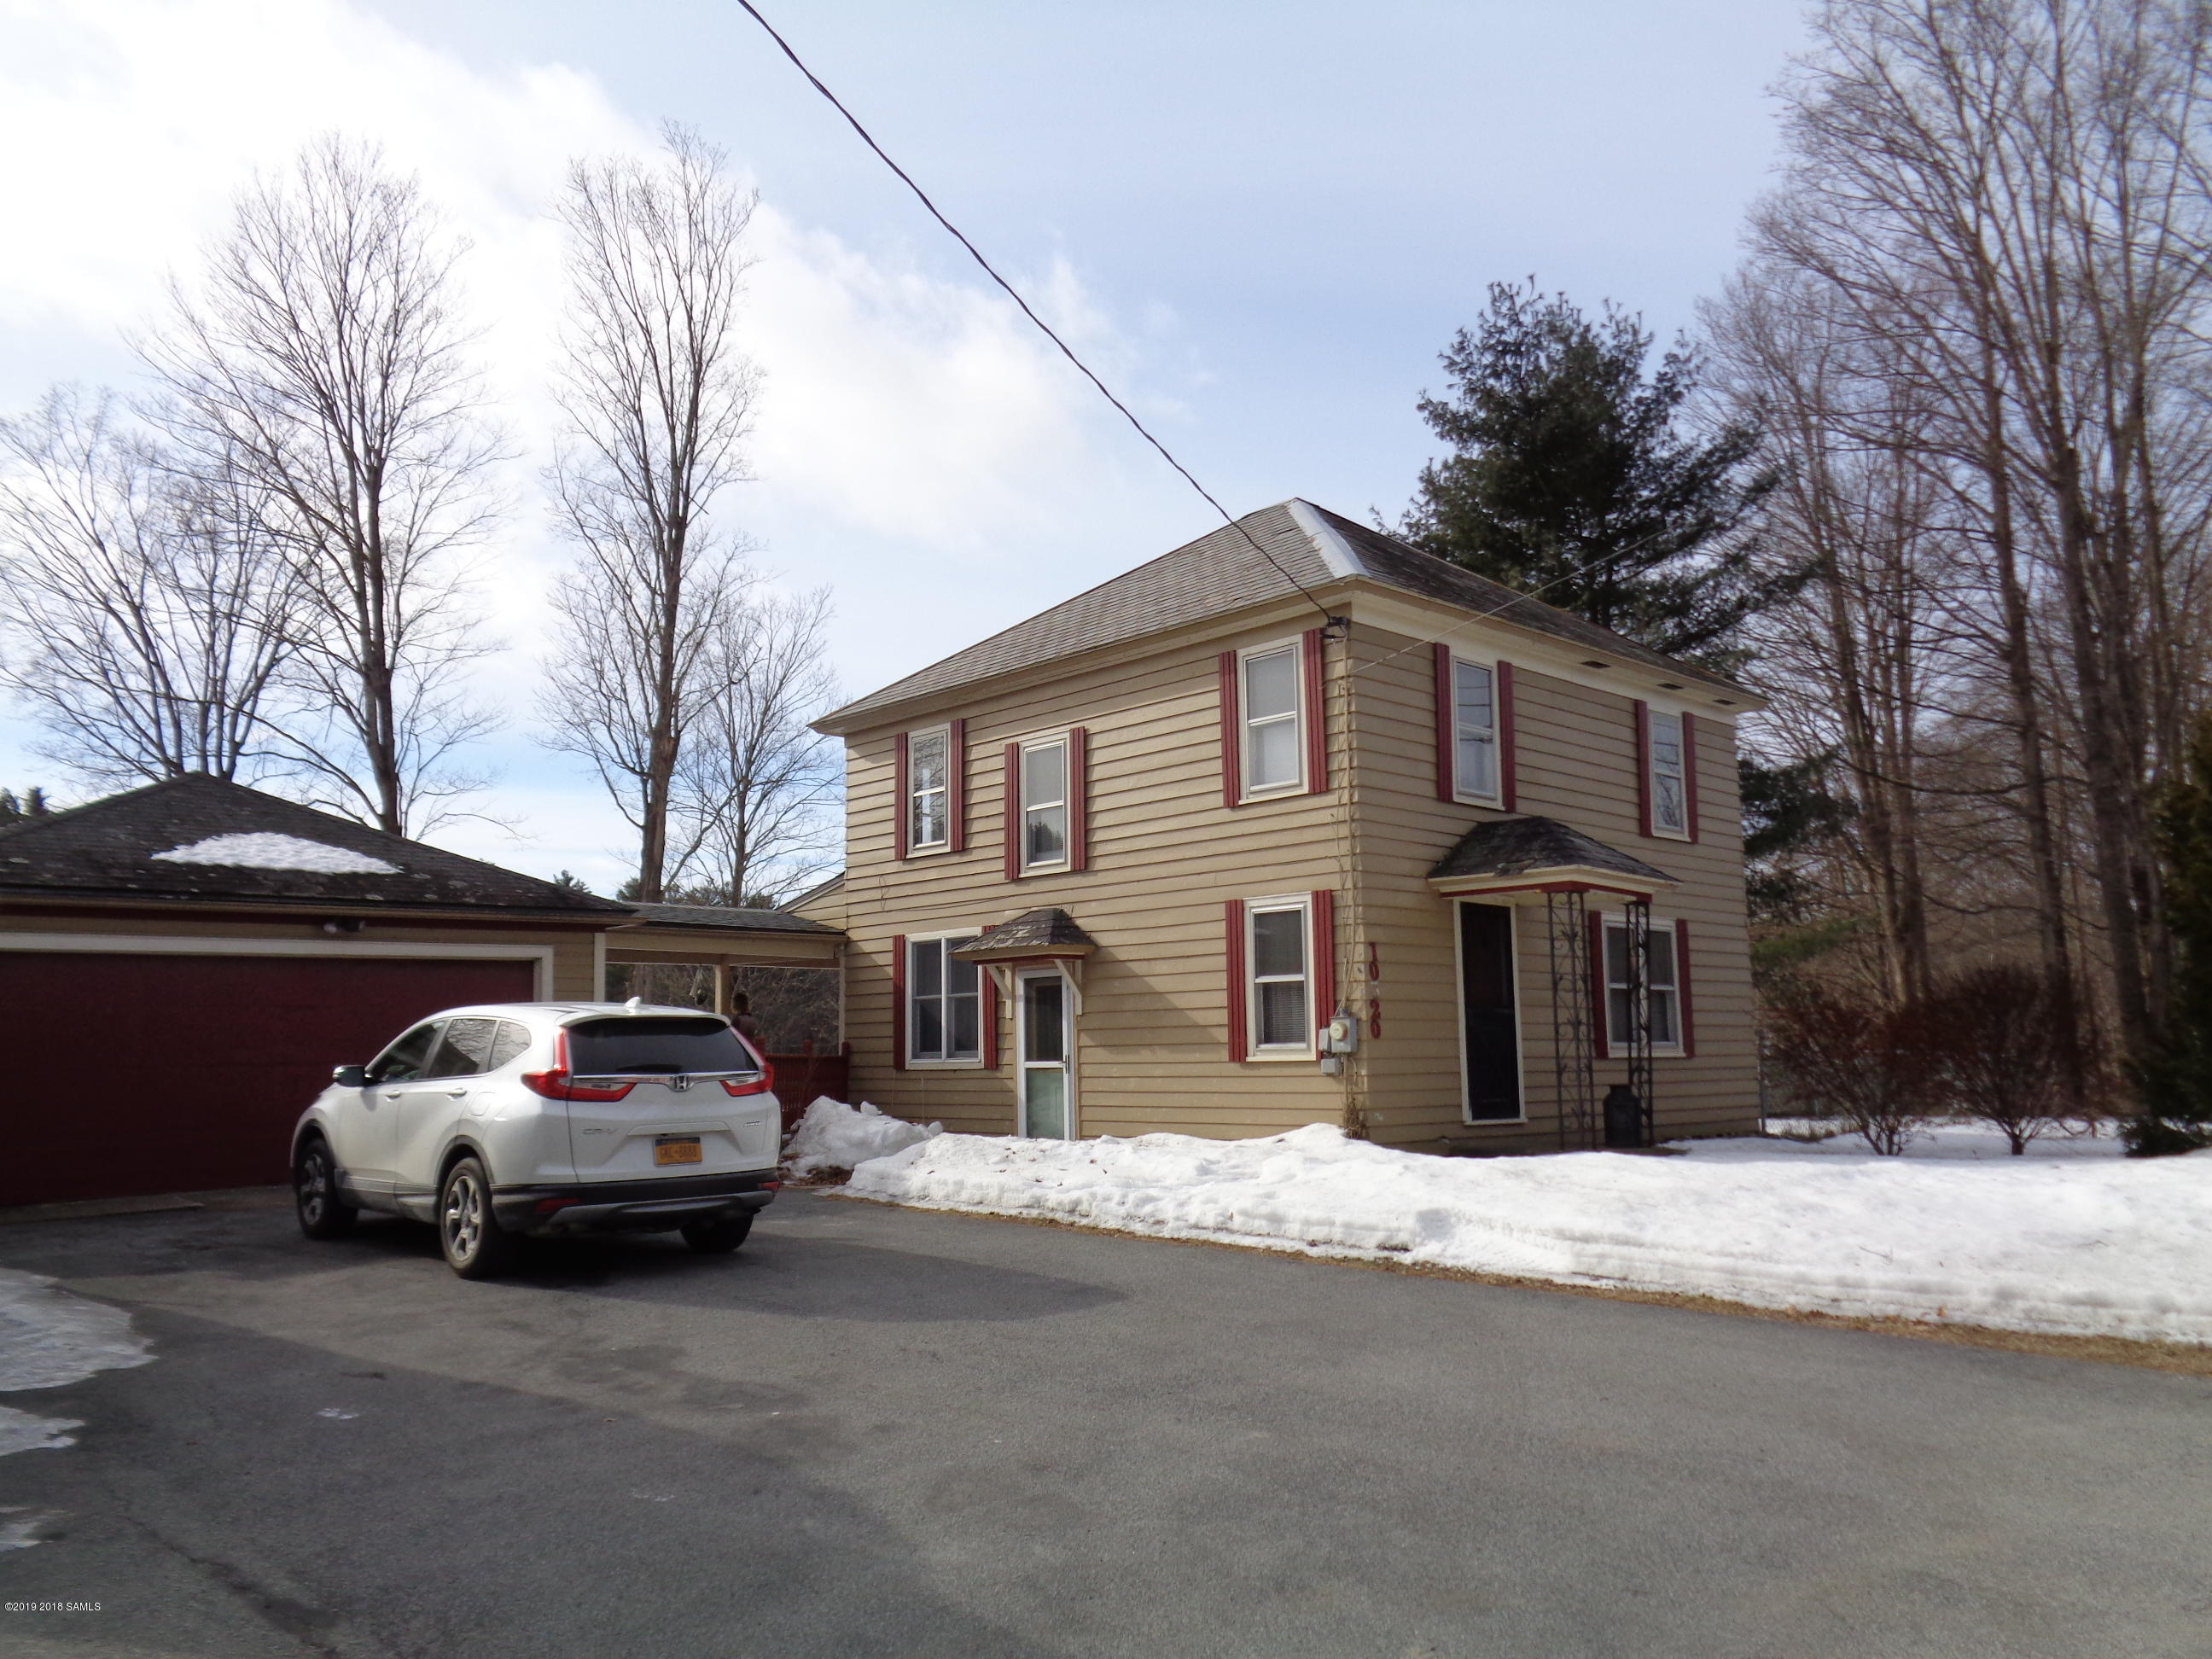 10520 State Route 149, Fort Ann NY 12827 photo 1